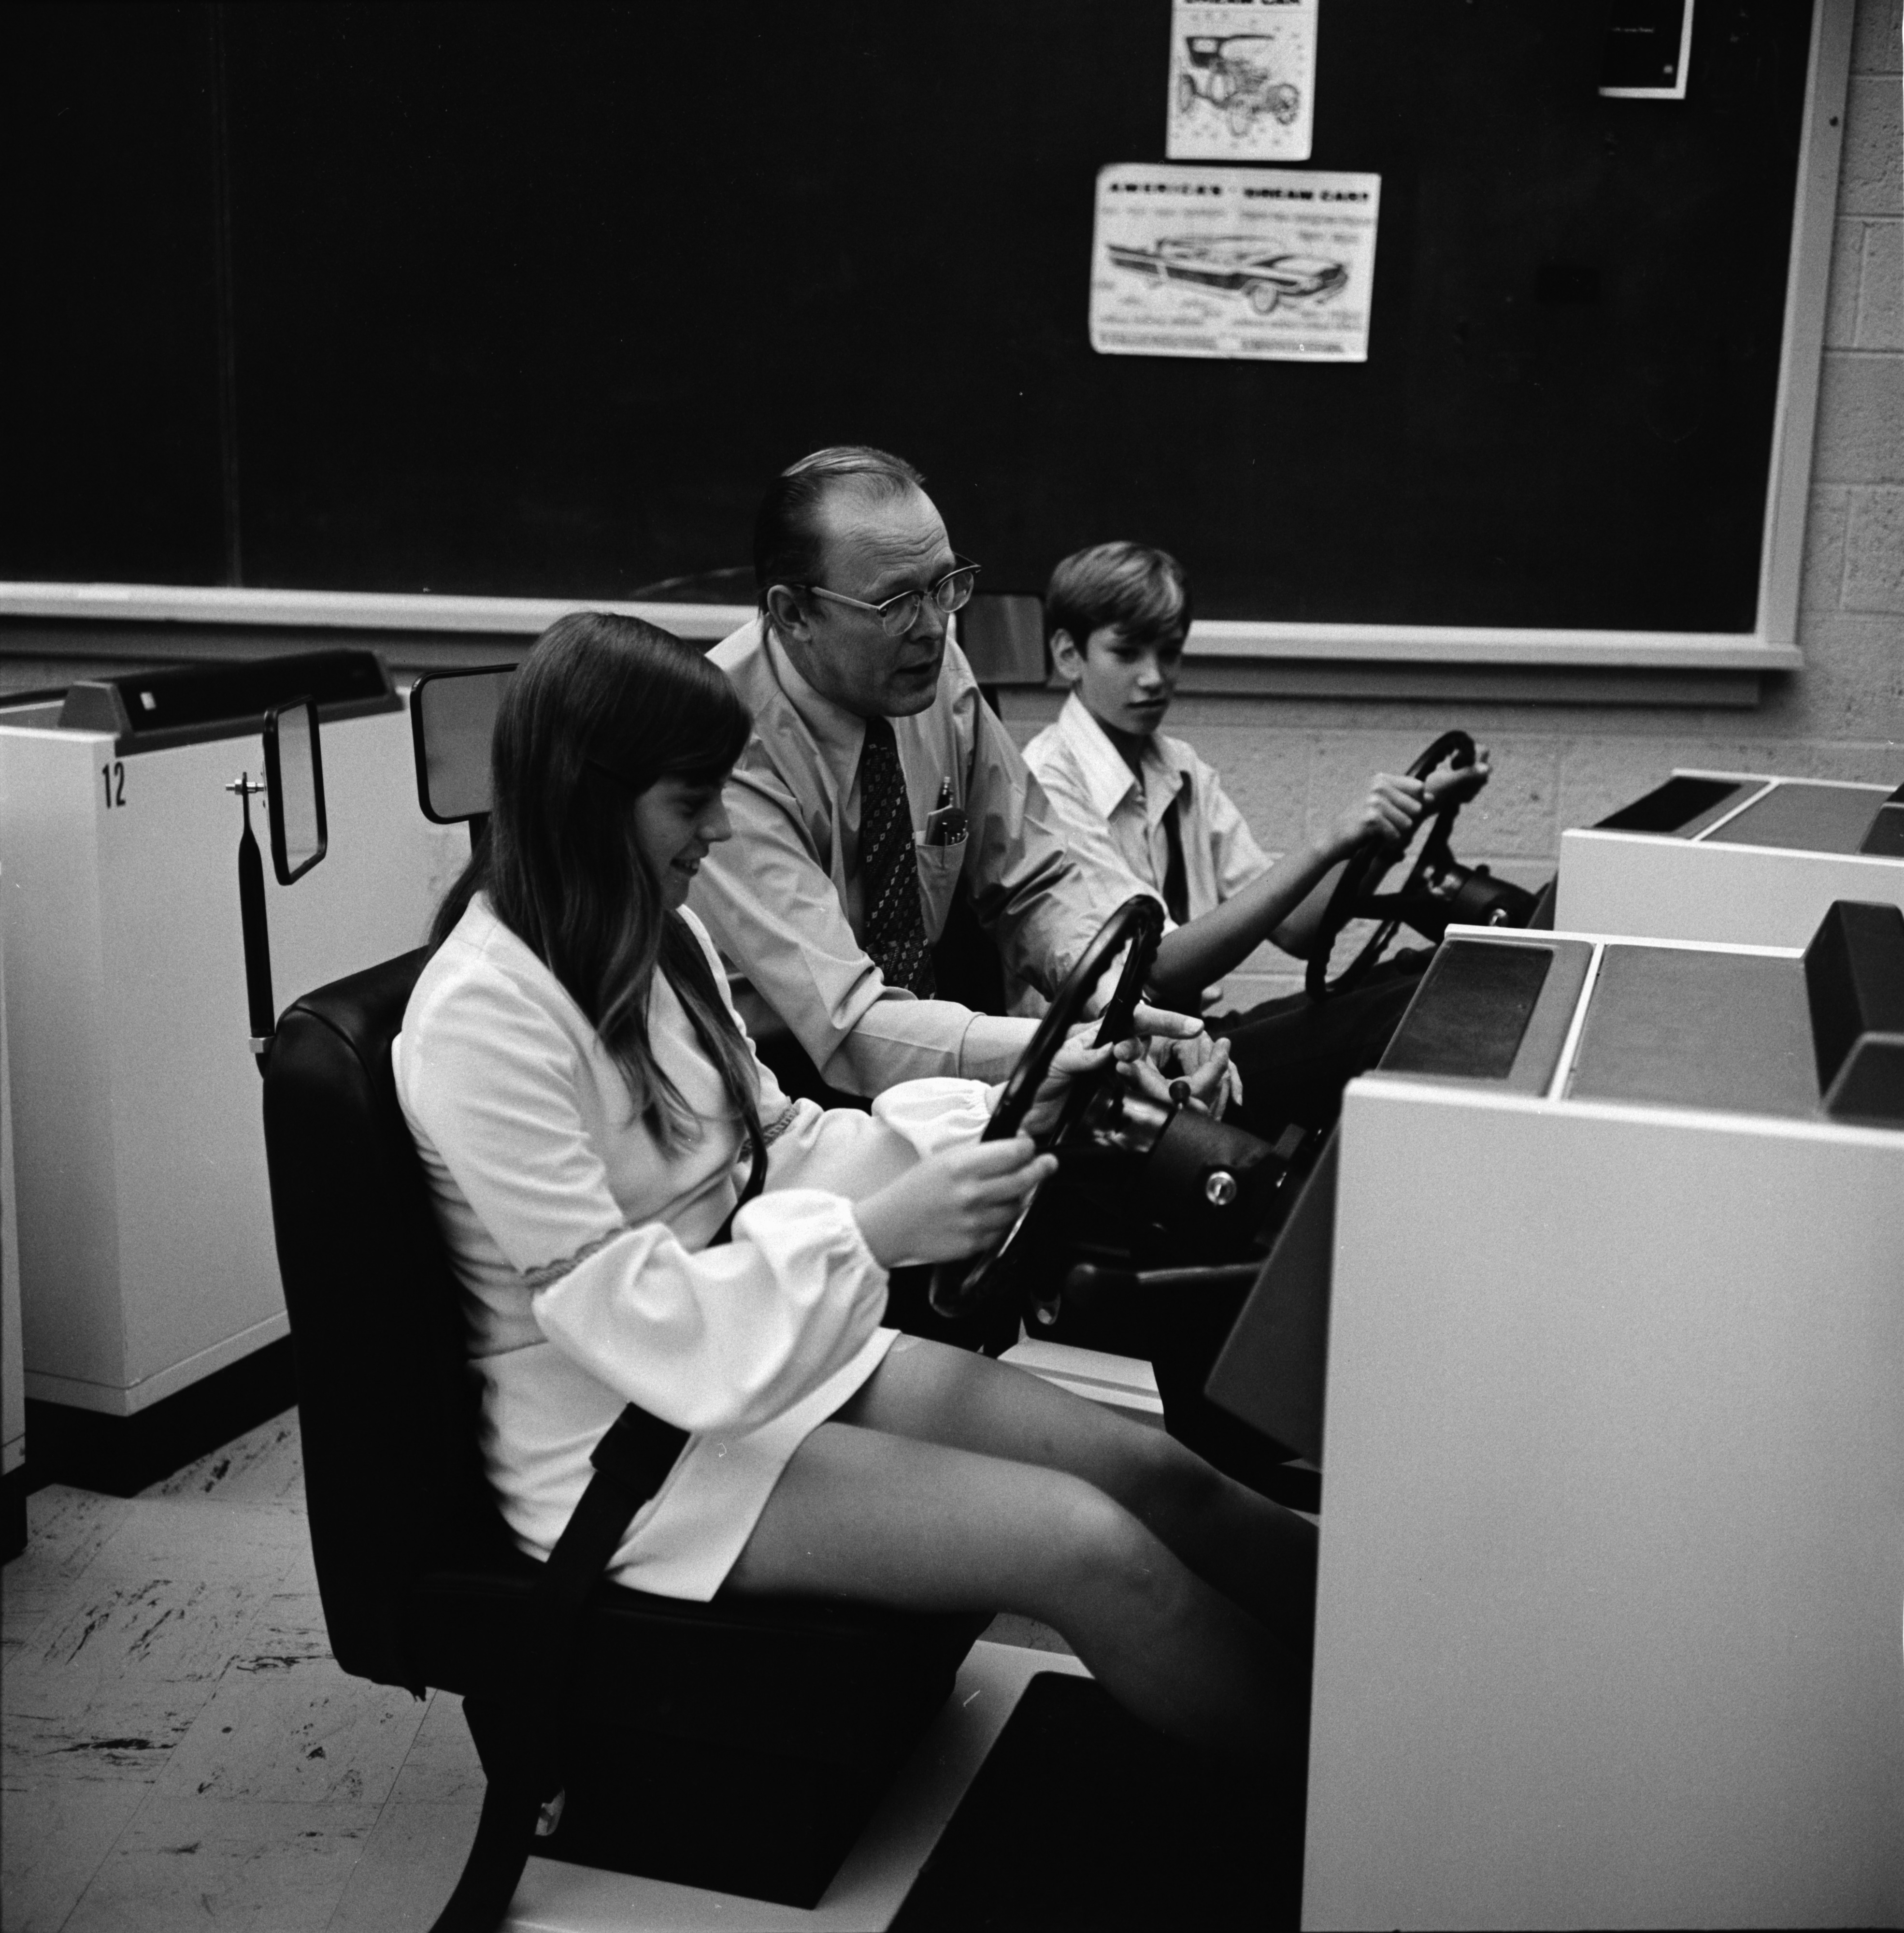 Driver Training Simulators at Pioneer High School, August 1972 image